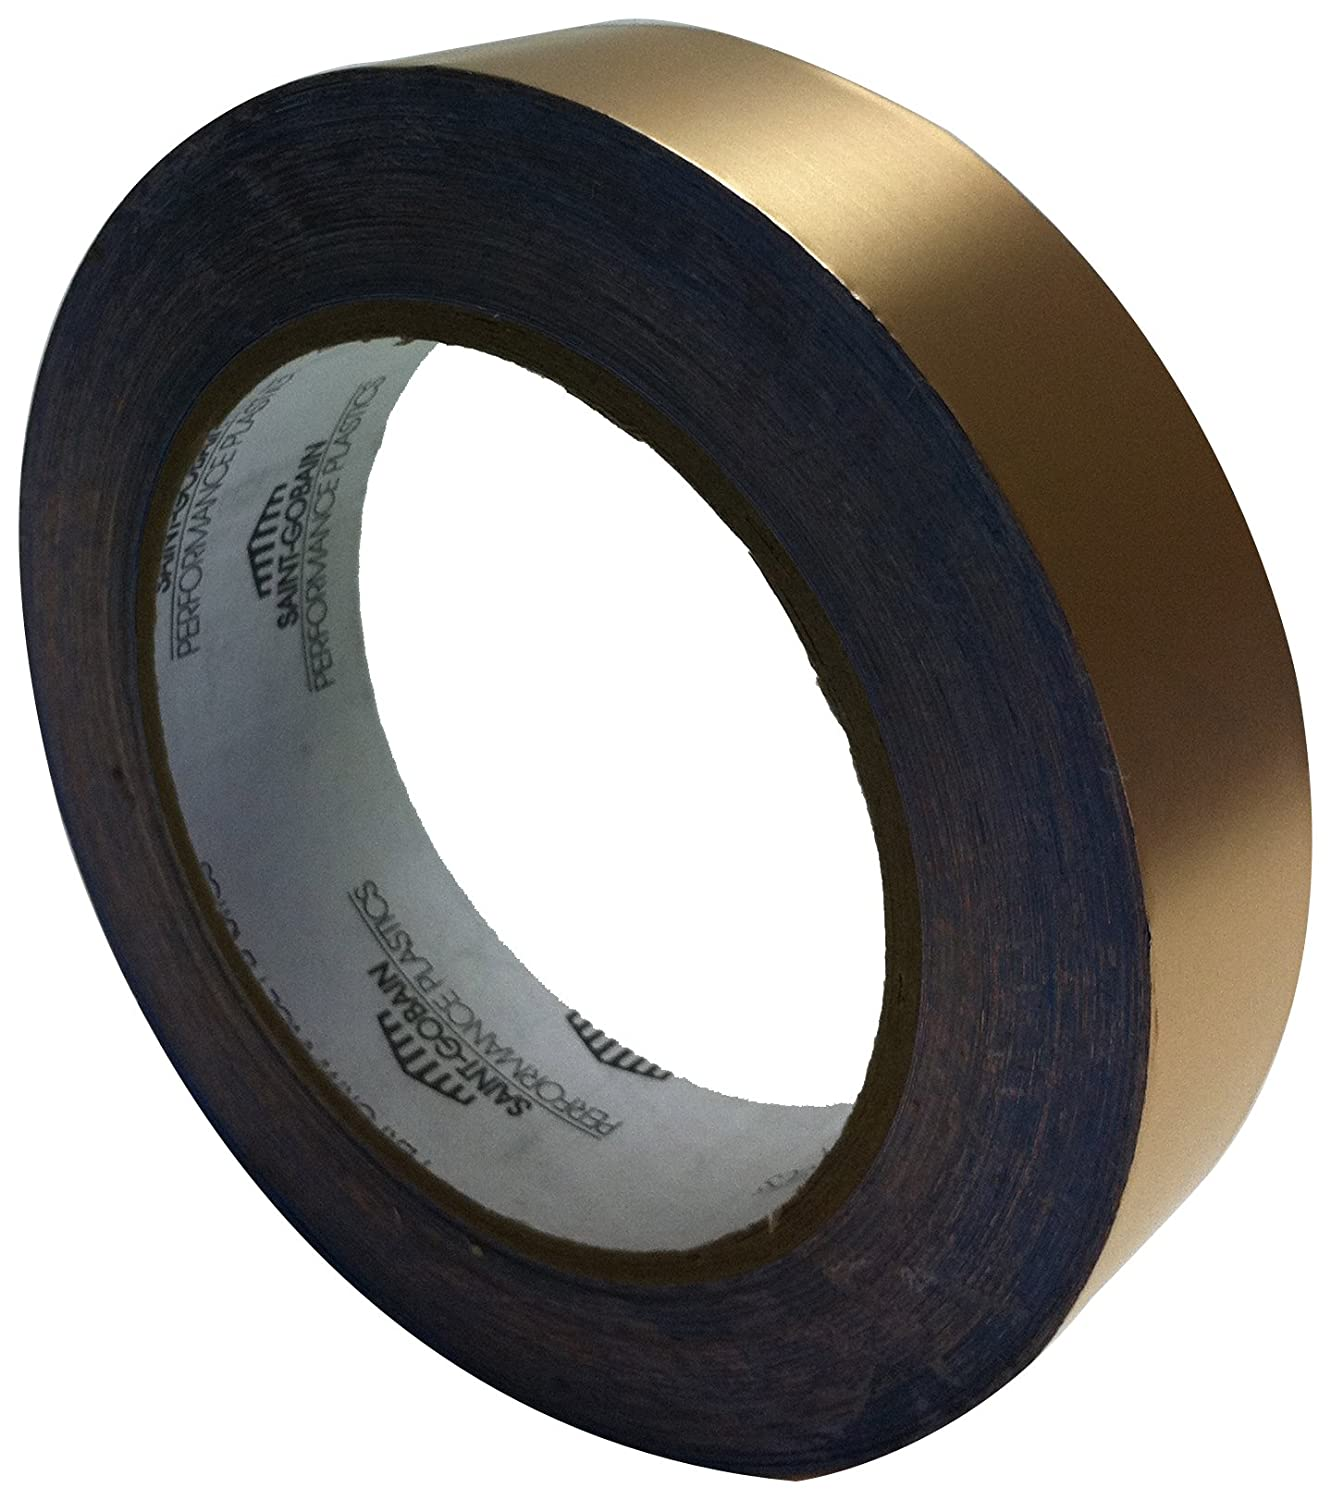 2 mil Thick 2 Width Saint-Gobain Copper Foil Tape 18 yard Length Pack of 1 2 Width CC6652 Copper